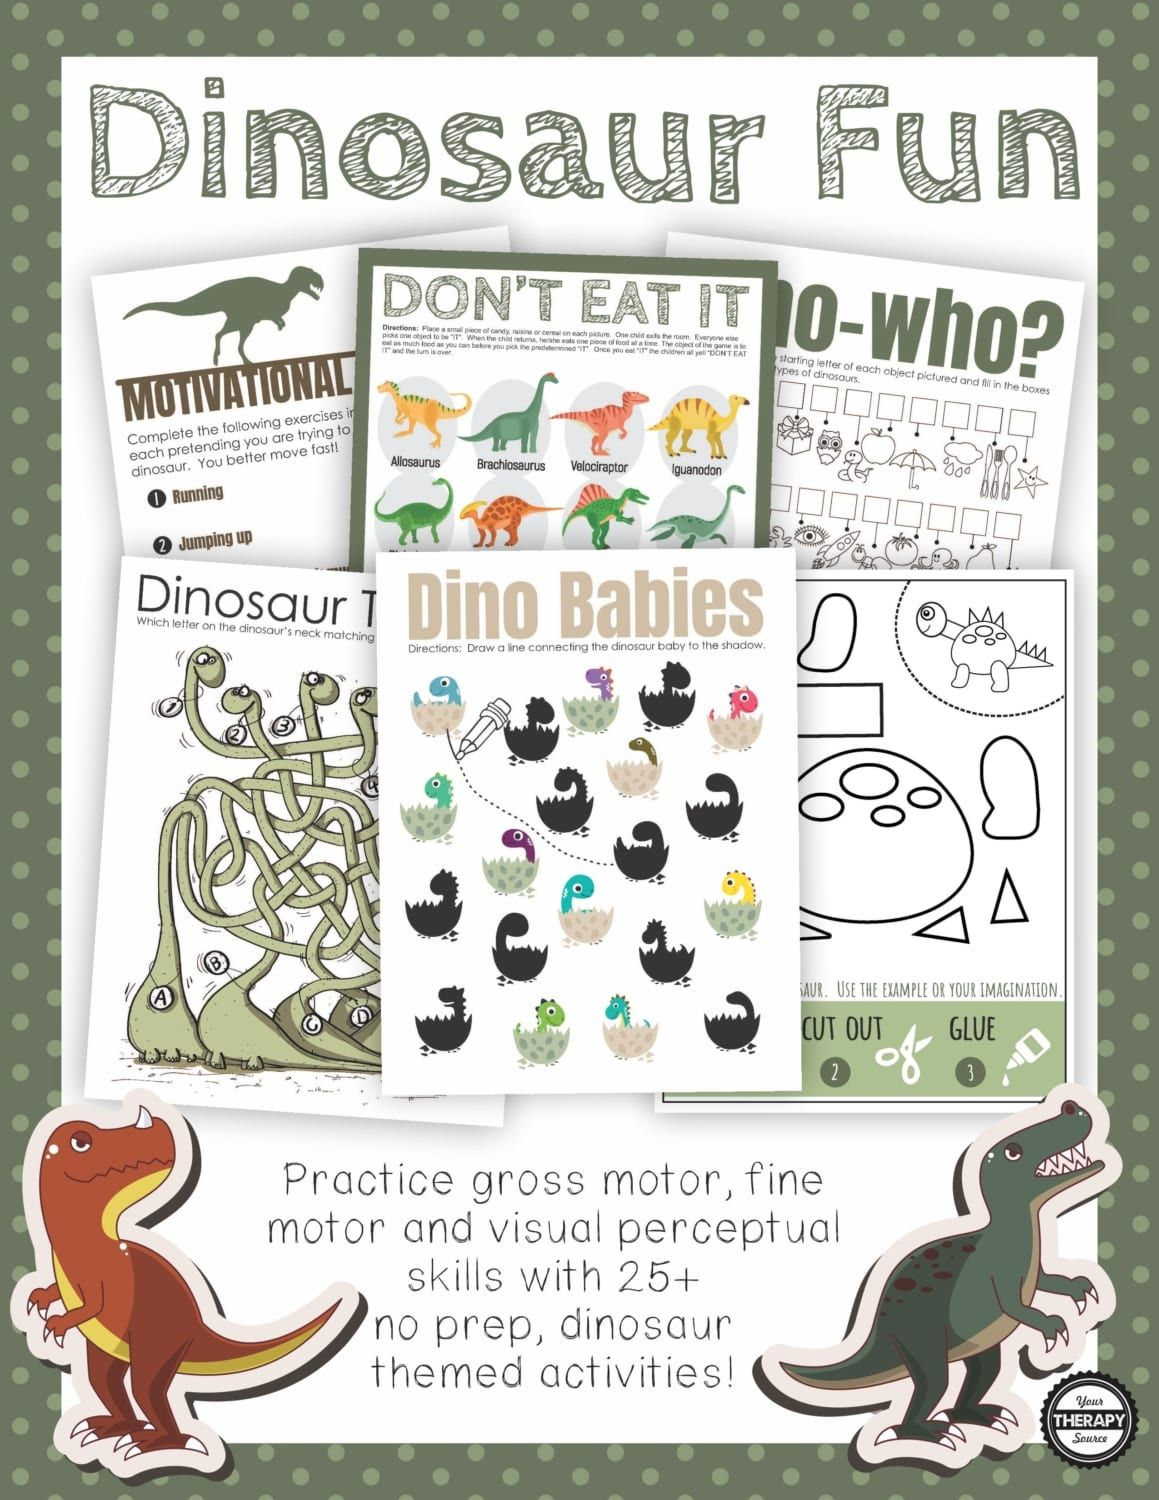 Free Dinosaur Printables To Practice Visual Motor And